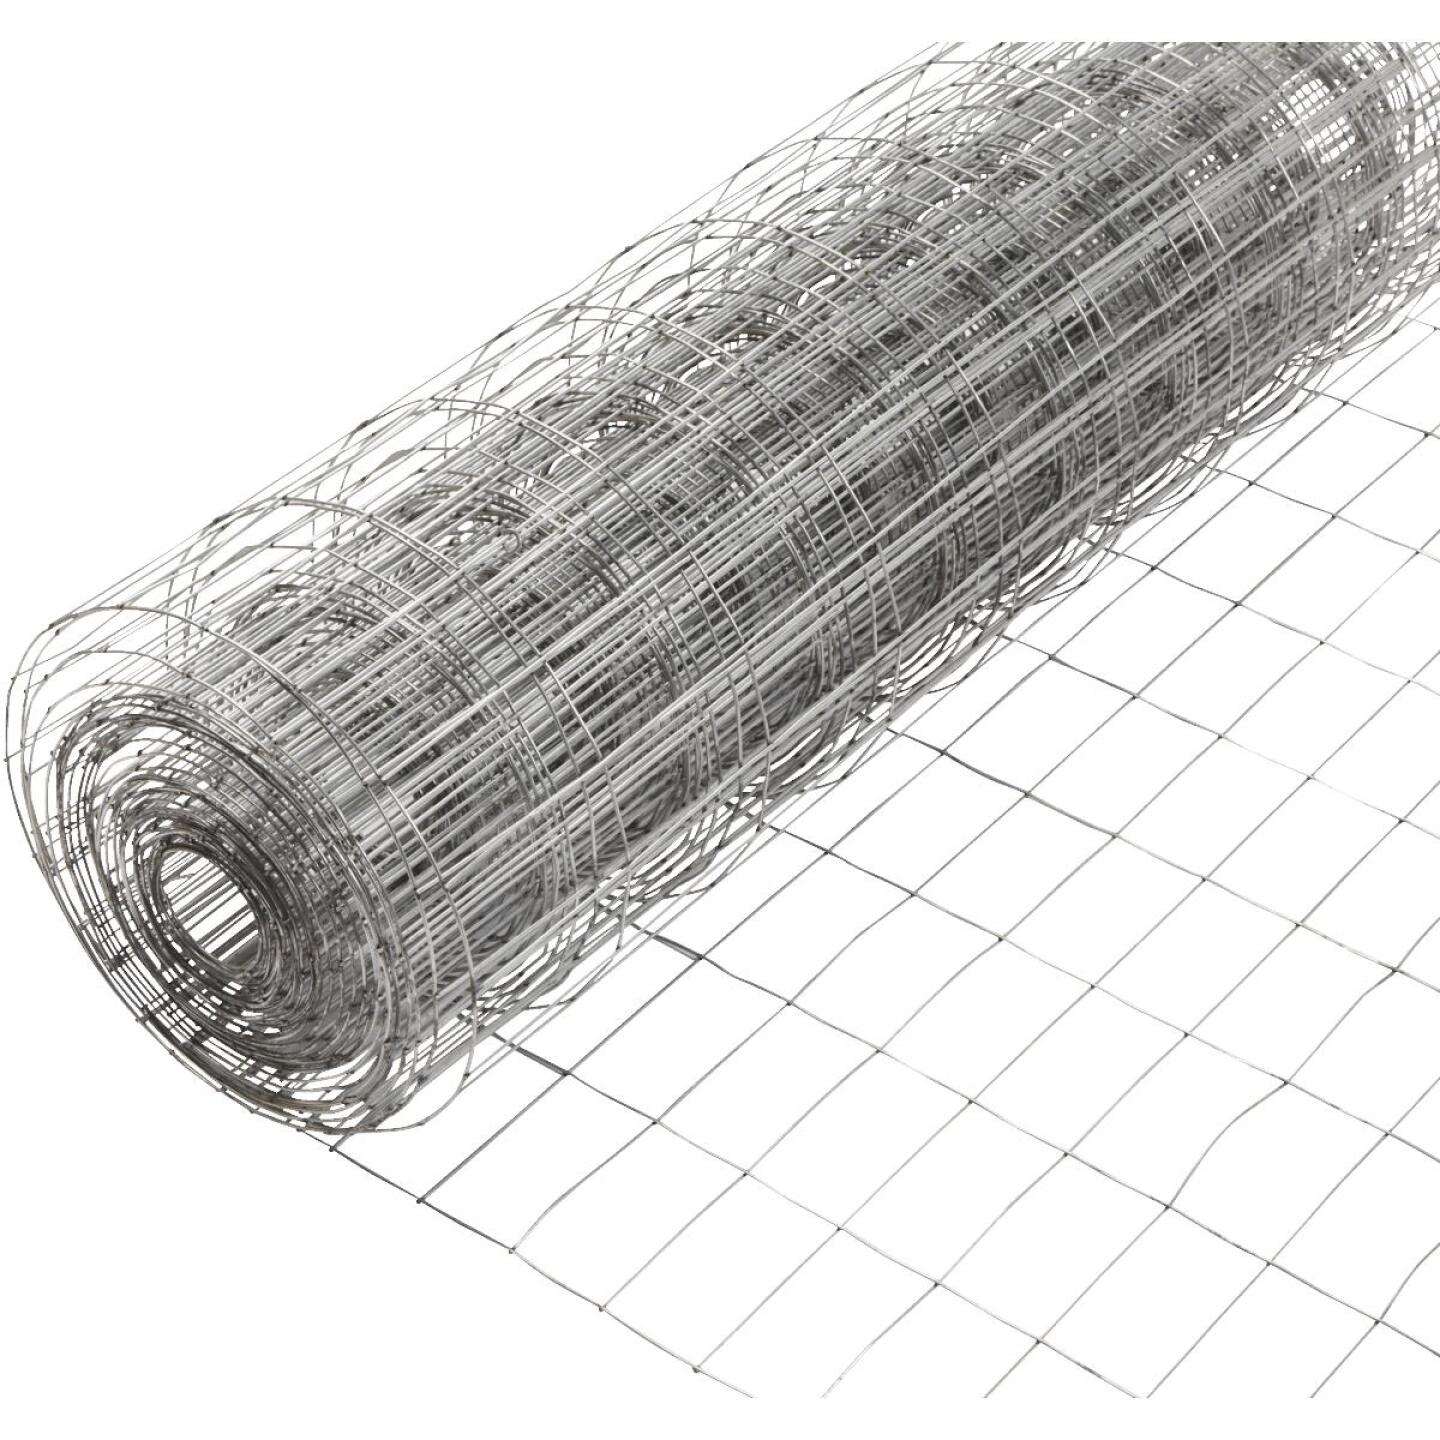 36 In. H. x 50 Ft. L. (2x4) Galvanized Welded Wire Fence Image 2